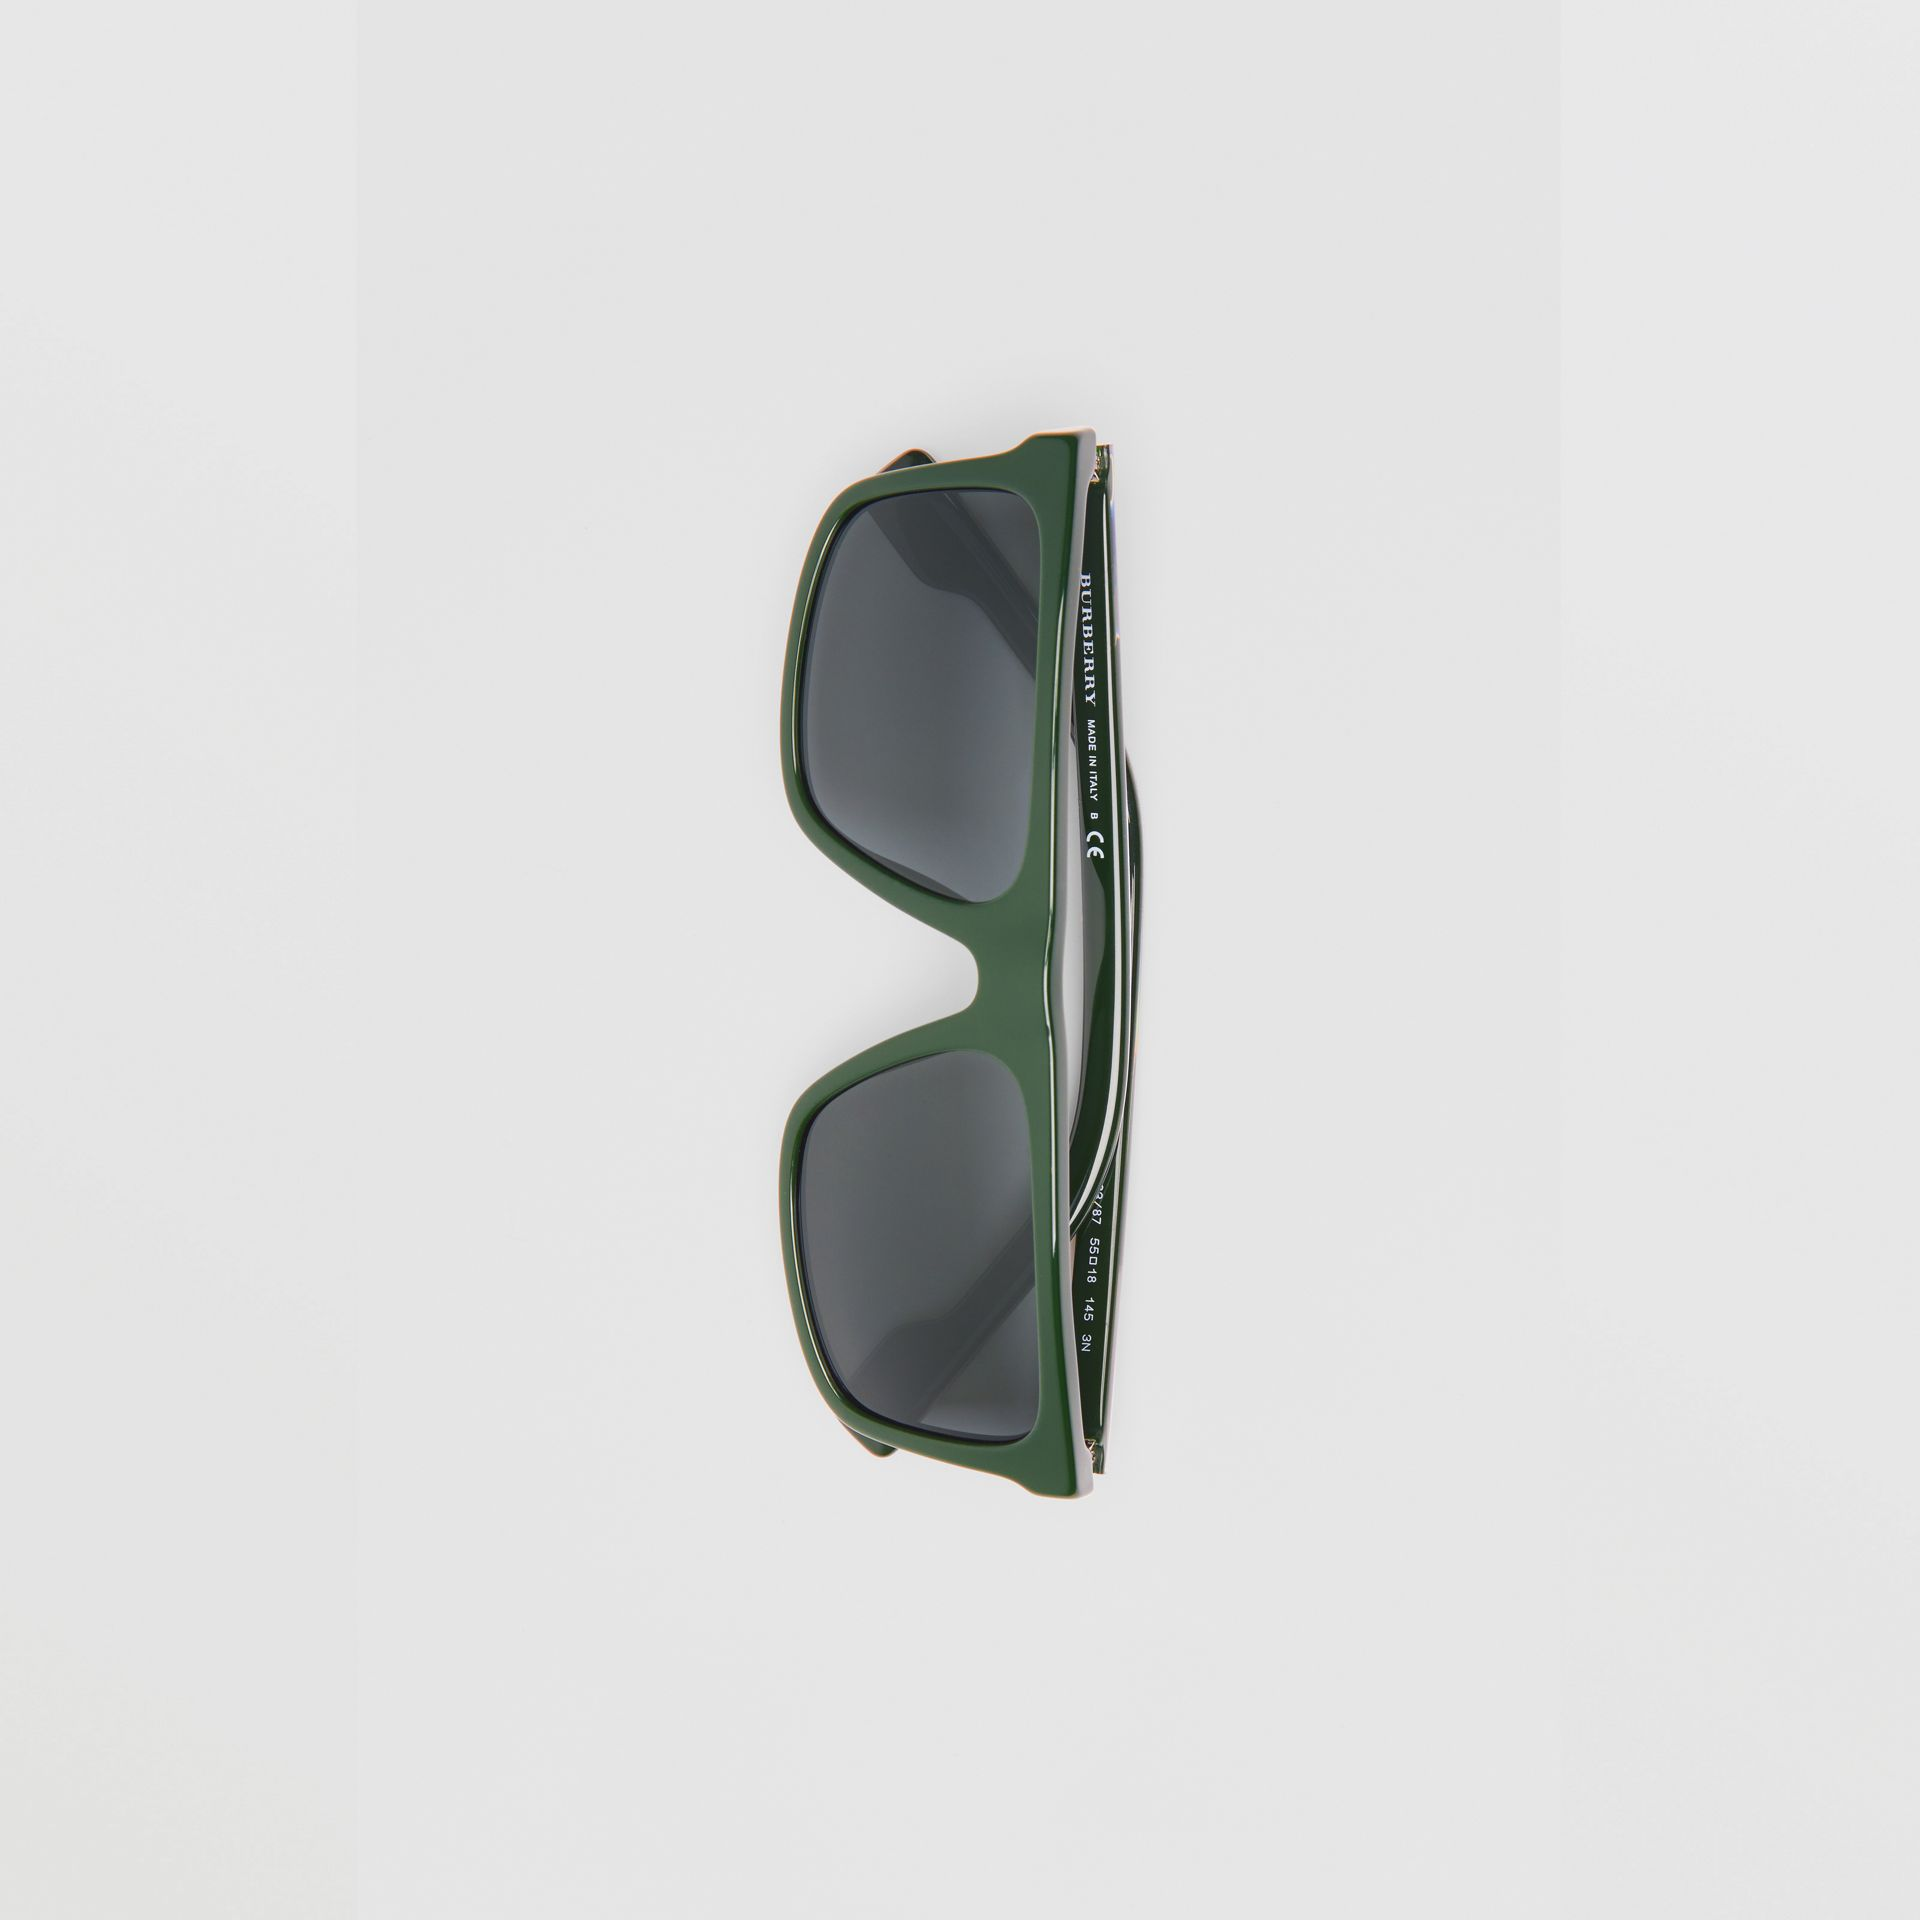 Straight-brow Sunglasses in Green - Men | Burberry United Kingdom - gallery image 3